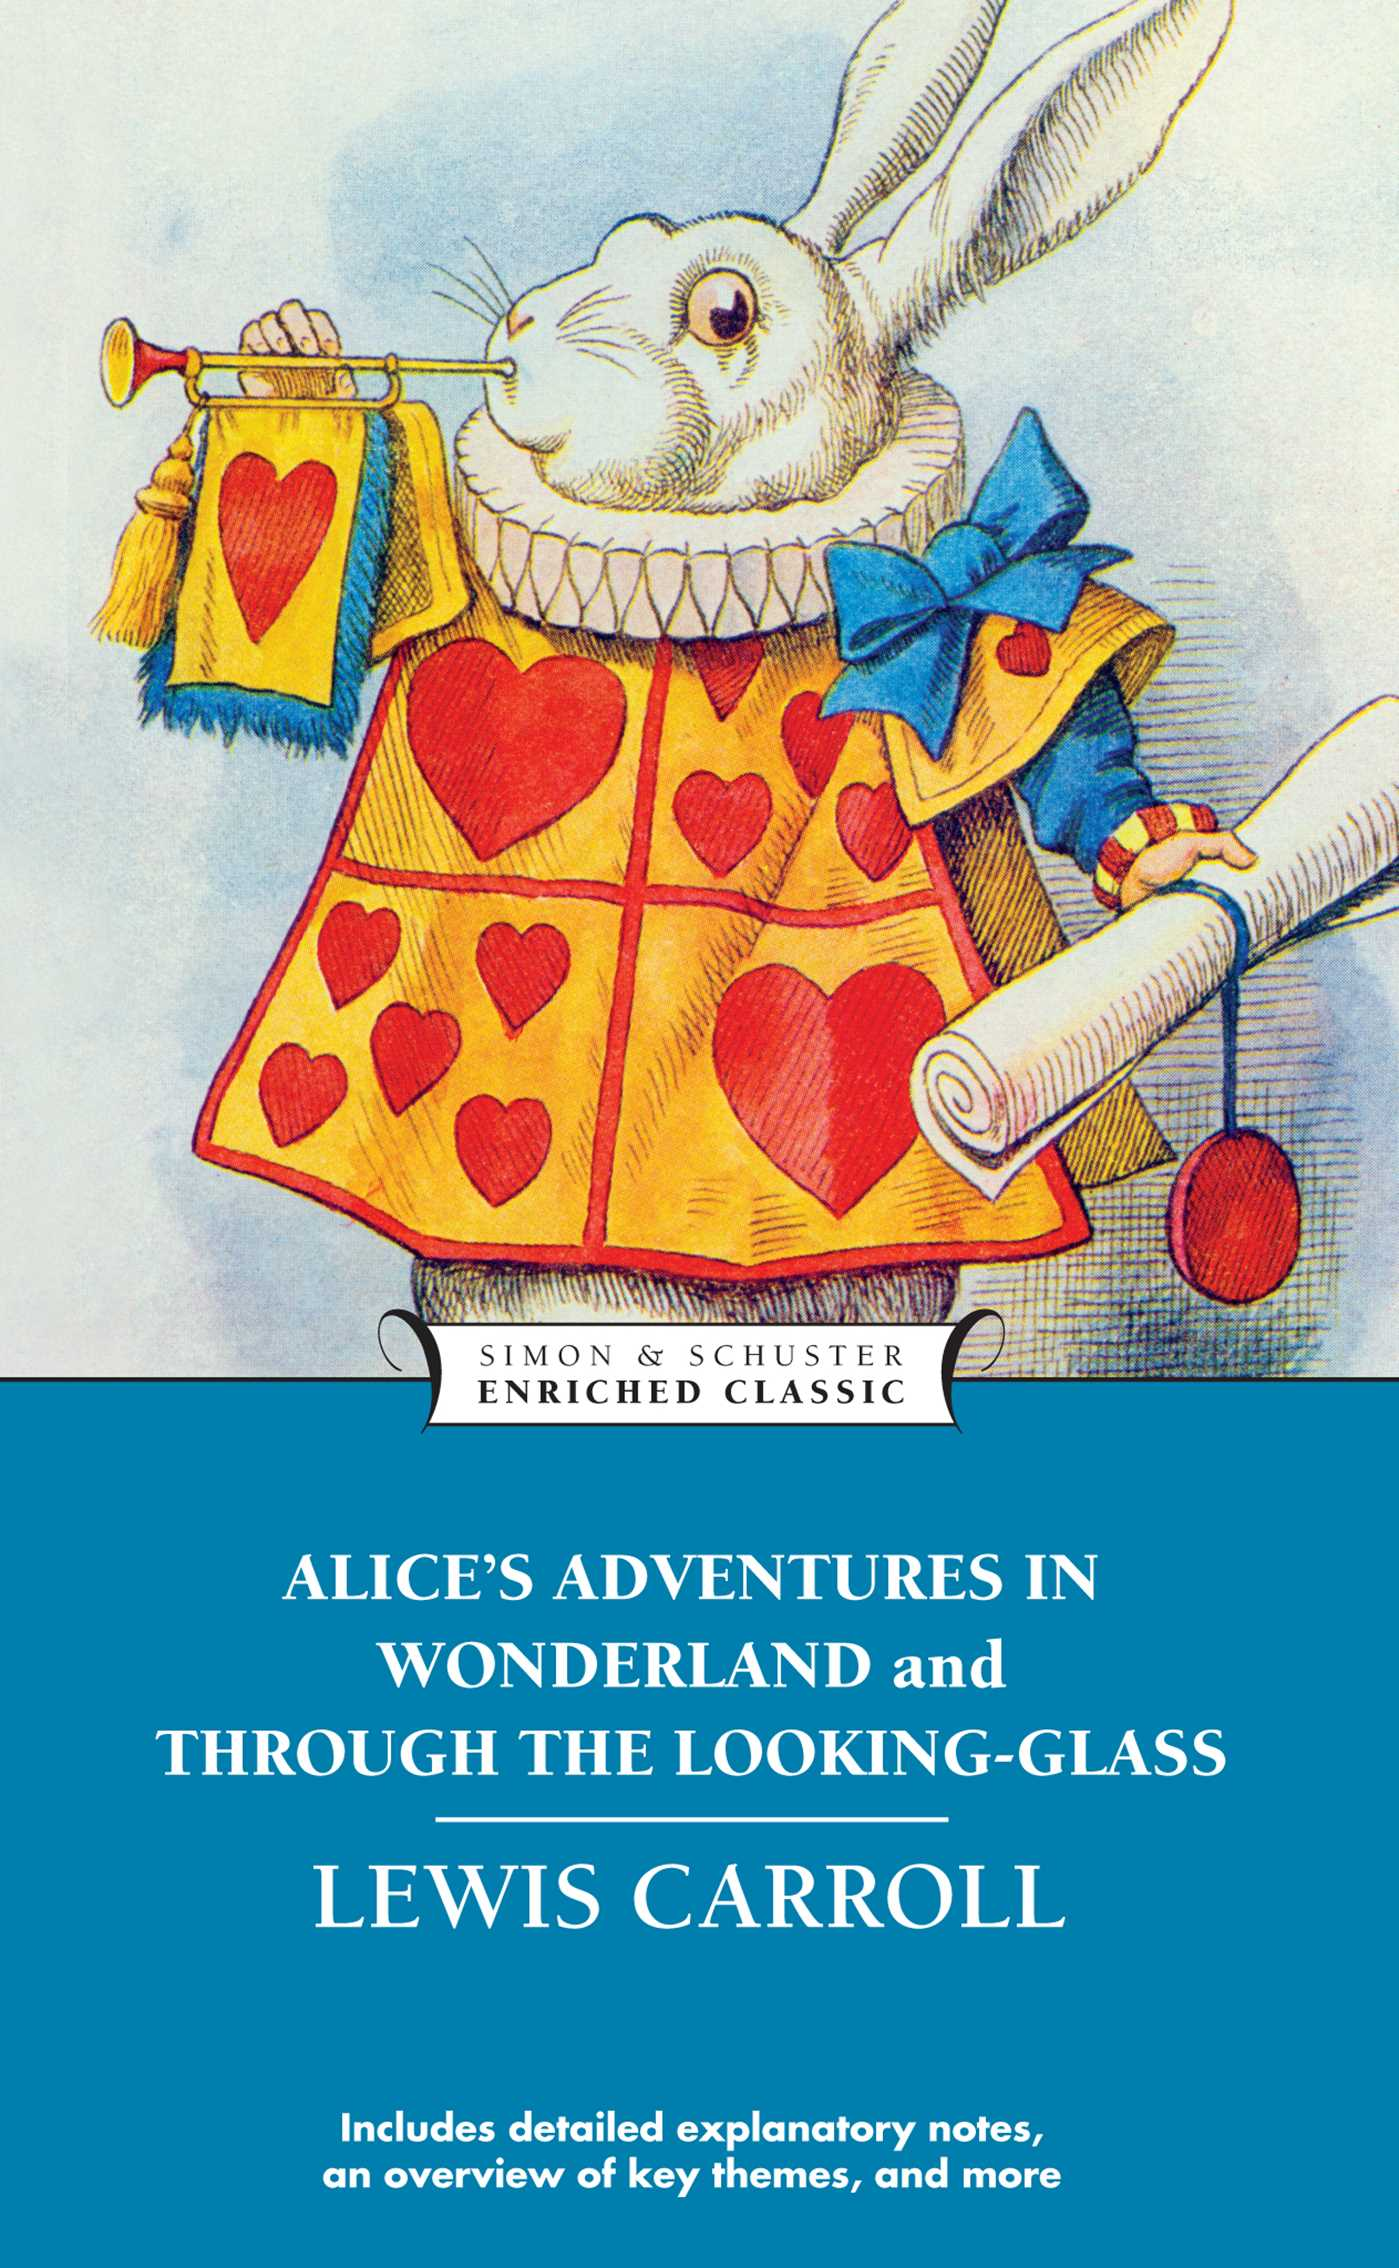 alices adventures in wonderland analysis Alice in wonderland literary analysis many themes are explored when reading lewis carrol's, alice in wonderland themes of childhood innocence, child abuse, dream, and others reading the story, it was quite clear to see one particular theme portrayed through out the book: child to adult .